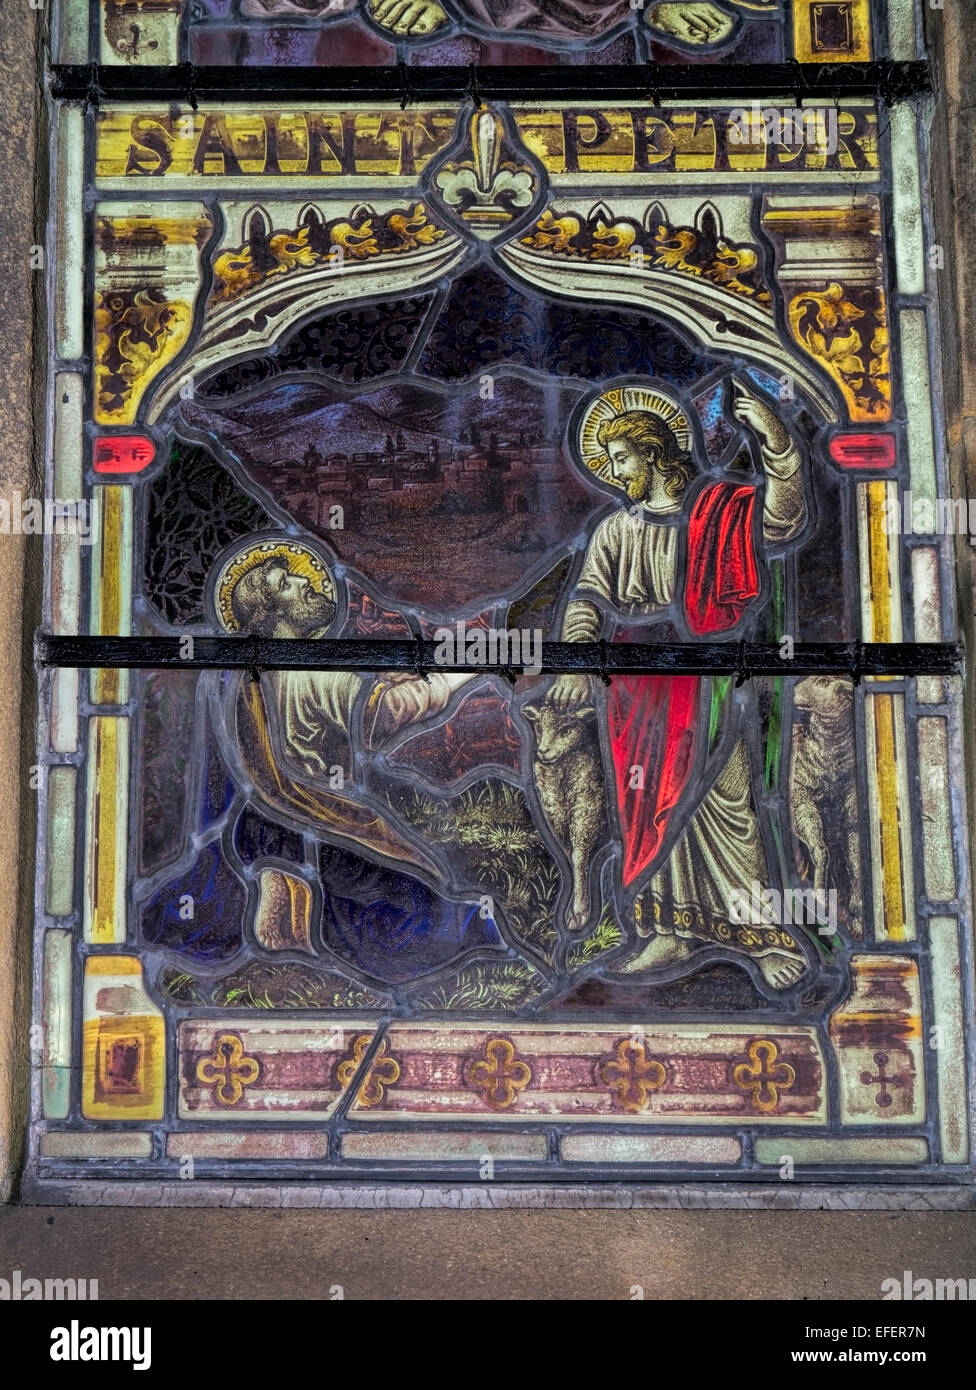 Church stained glass windows that used to be known as 'Poor man's bible' - Stock Image